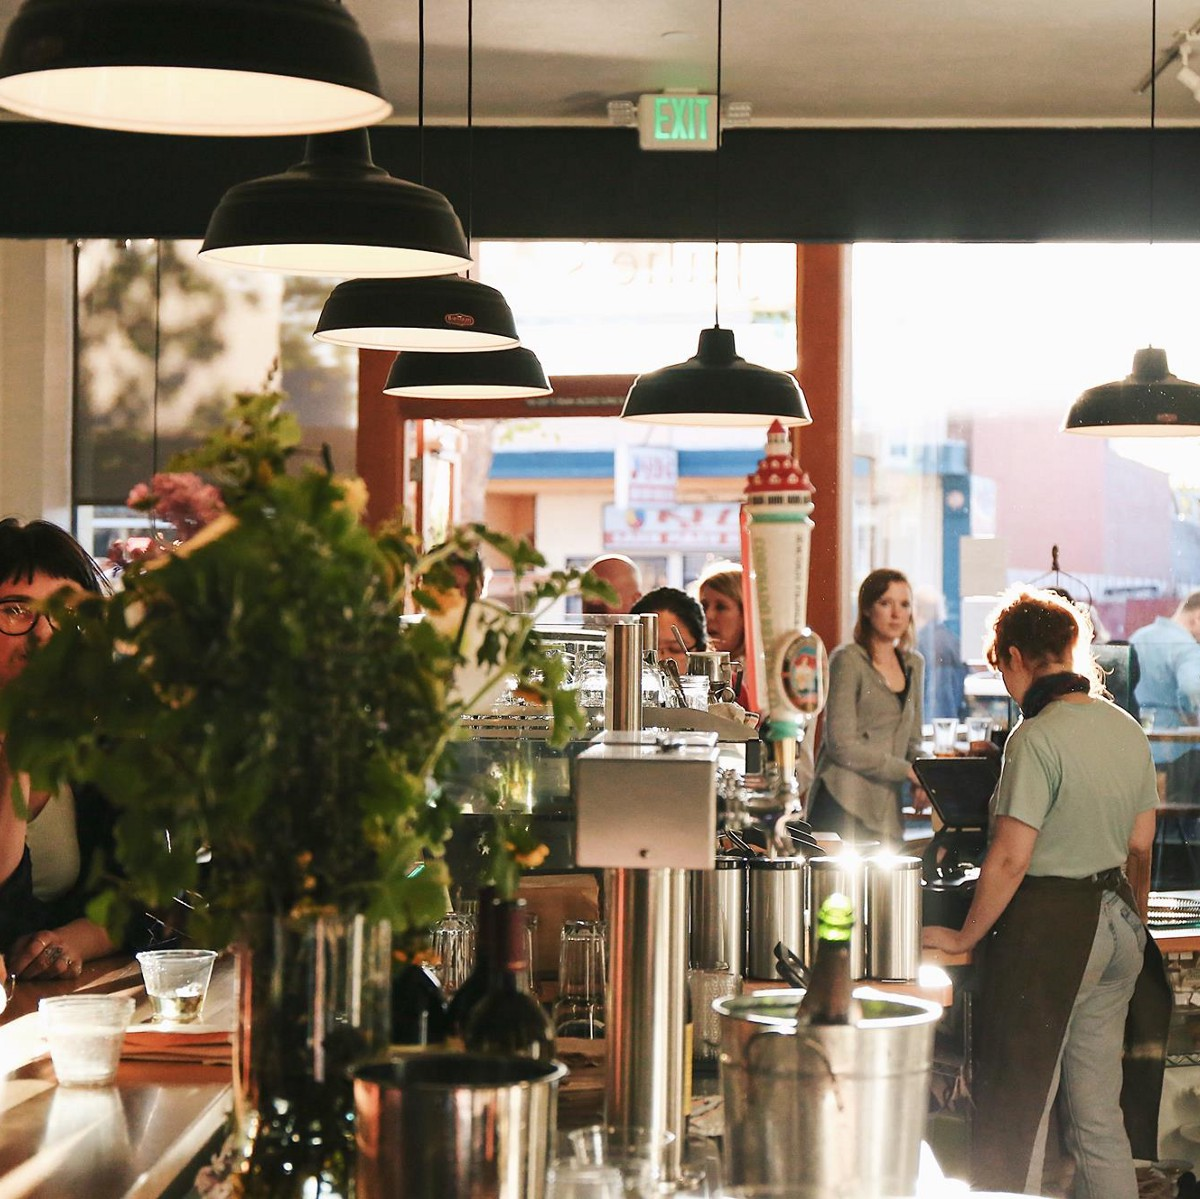 At These Cafés in Oakland, People Actually Talk to Each Other